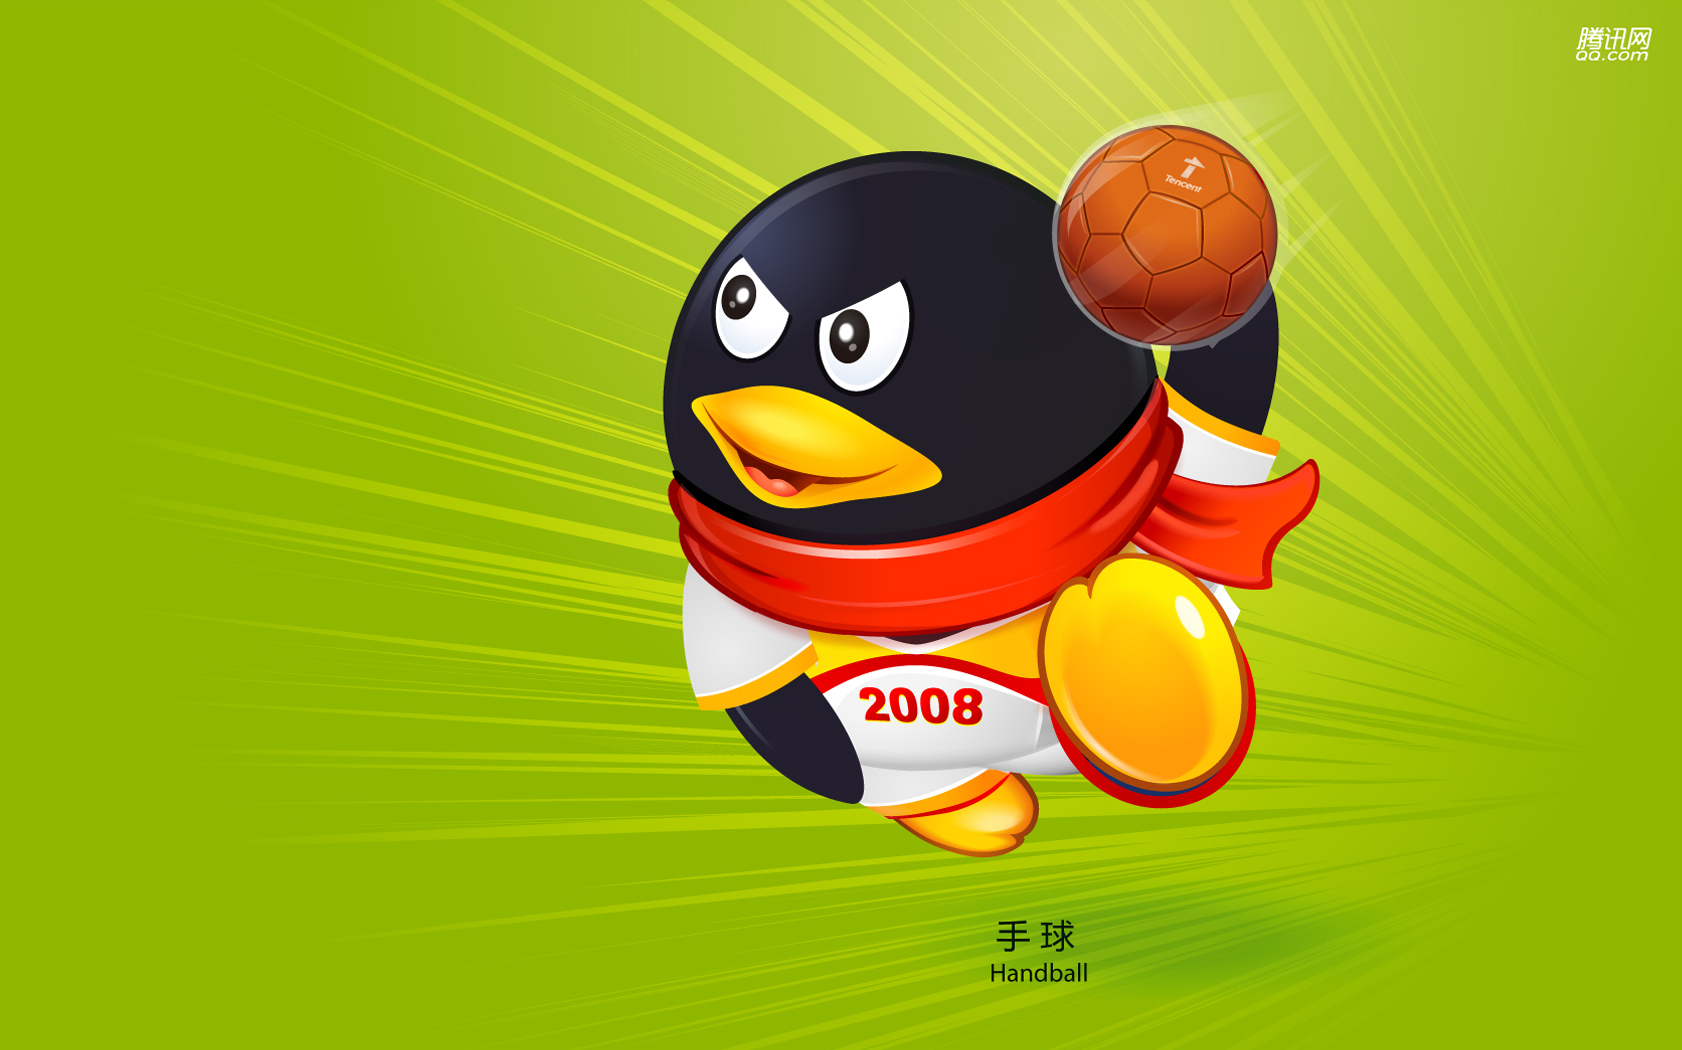 QQ Games Wallpapers 15430